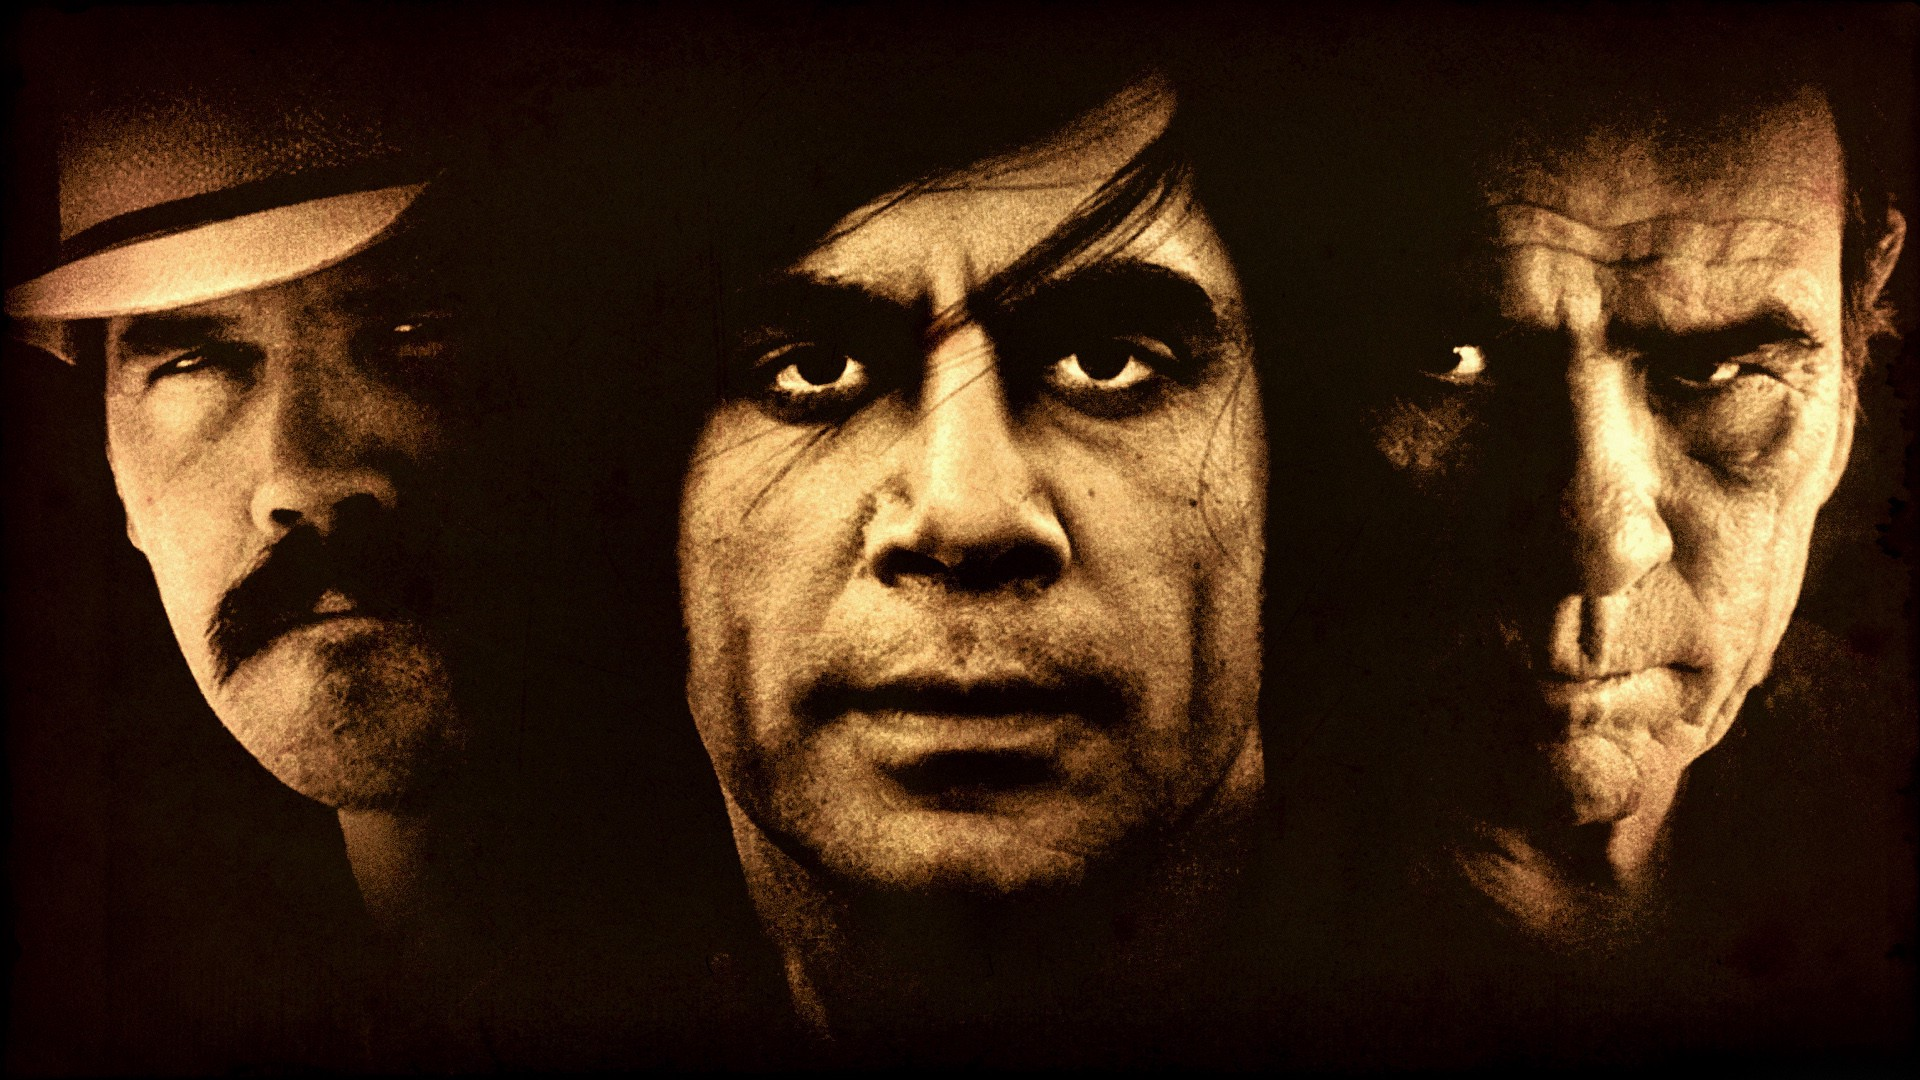 No Country For Old Men 2007 The Ultimate Search For Morality By Ishmeet Singh All Things Cinema Medium